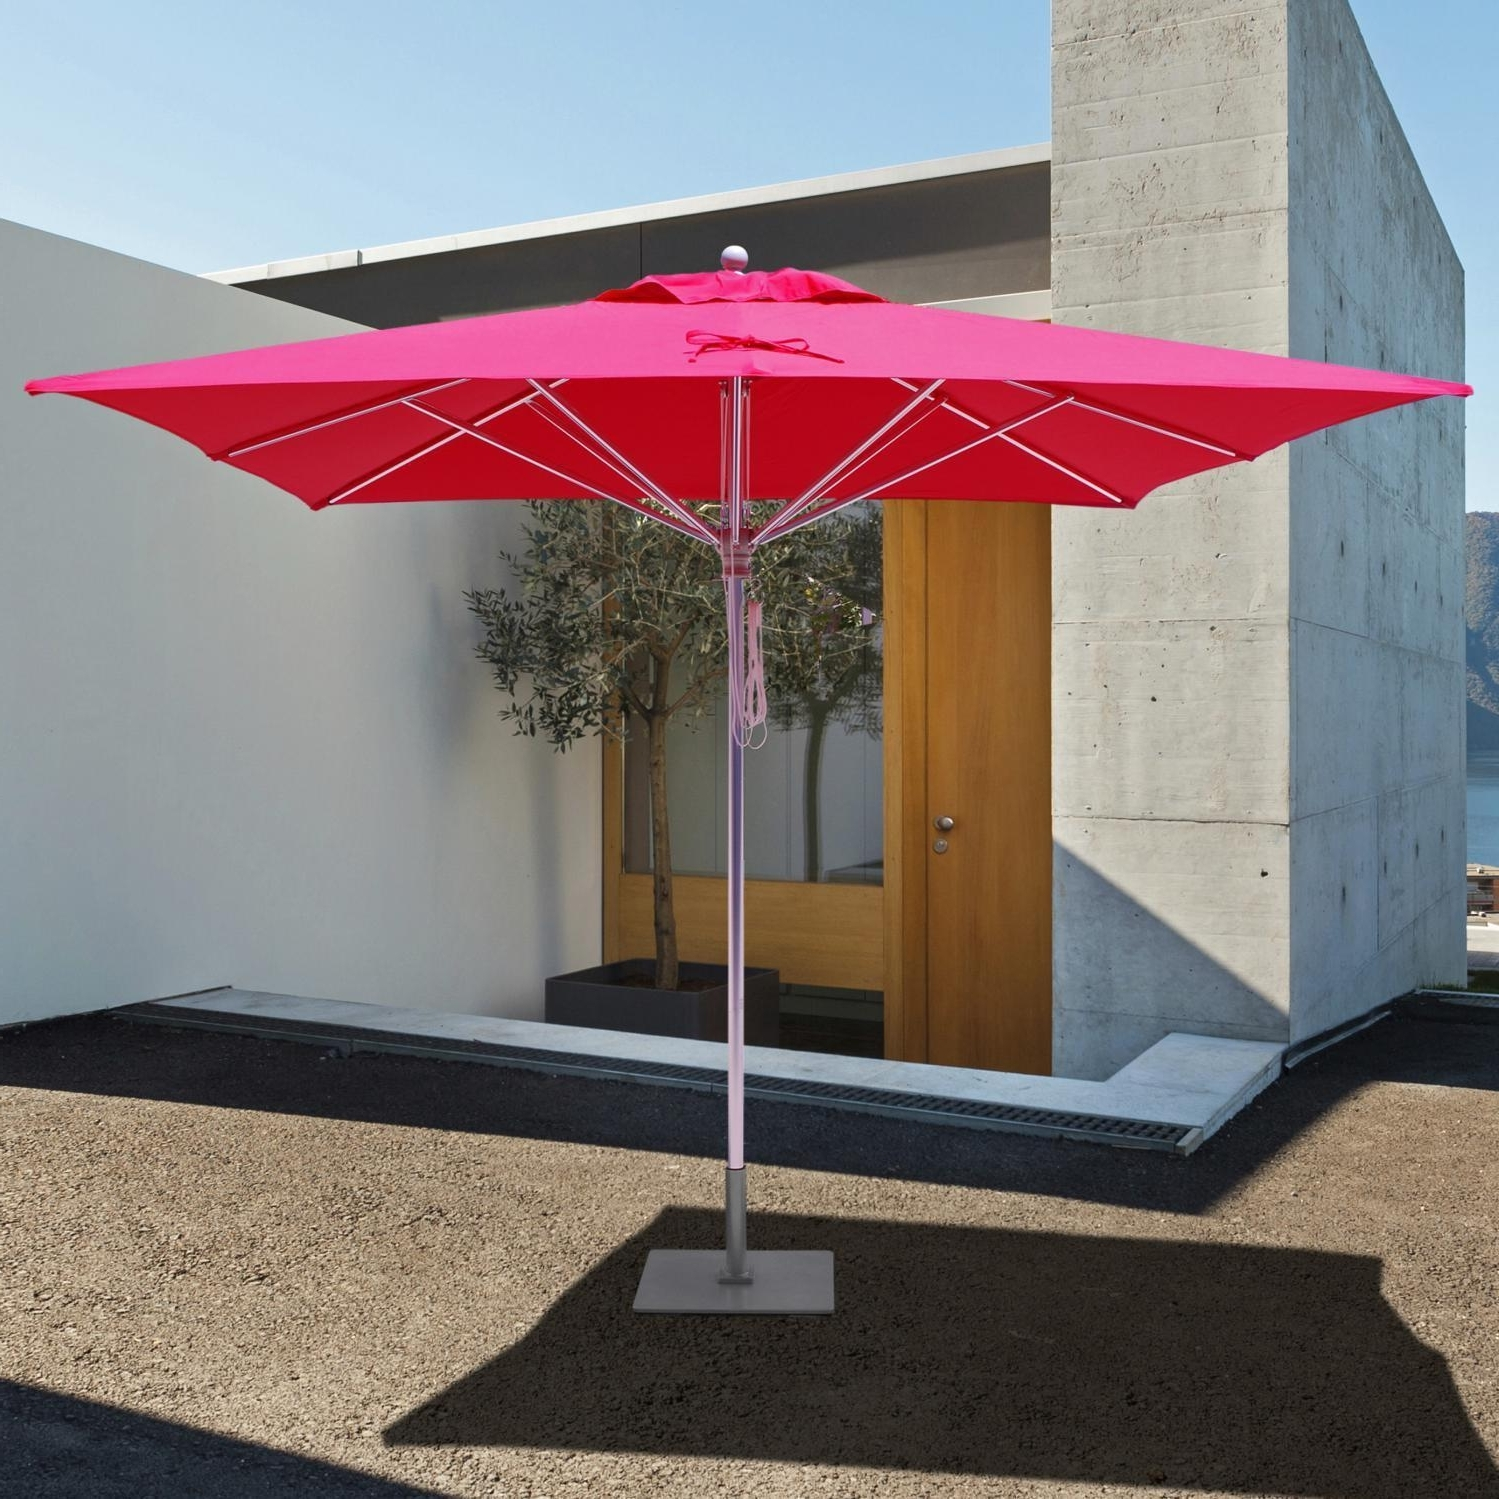 Square Patio Umbrellas For Current Galtech Sr Series 10 Ft Square Aluminum Commercial Patio Umbrella (View 14 of 20)